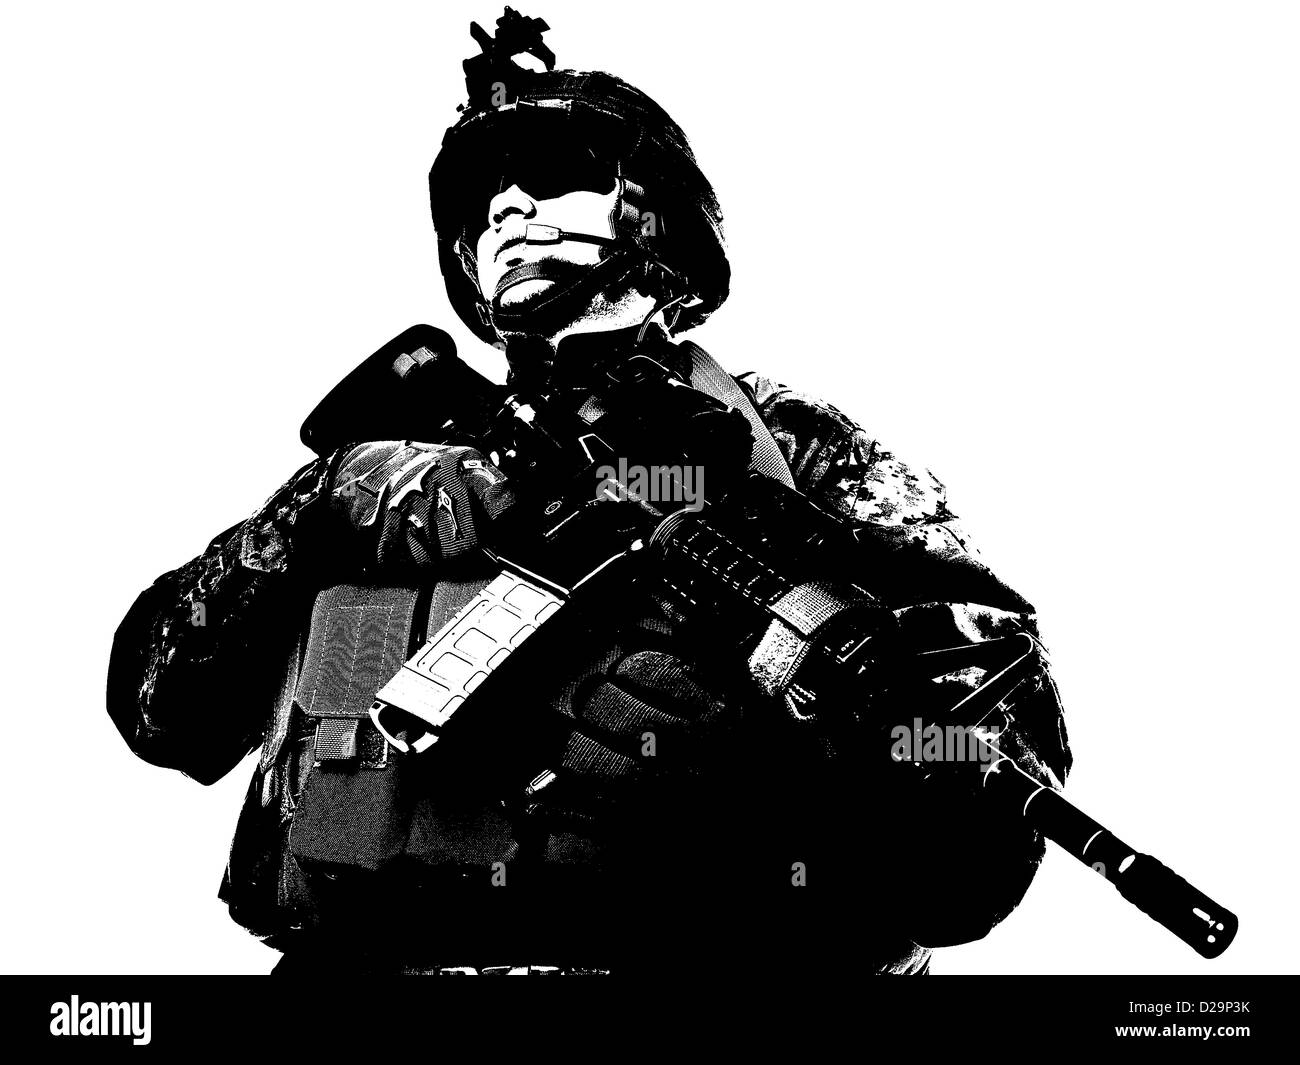 US soldier - Stock Image